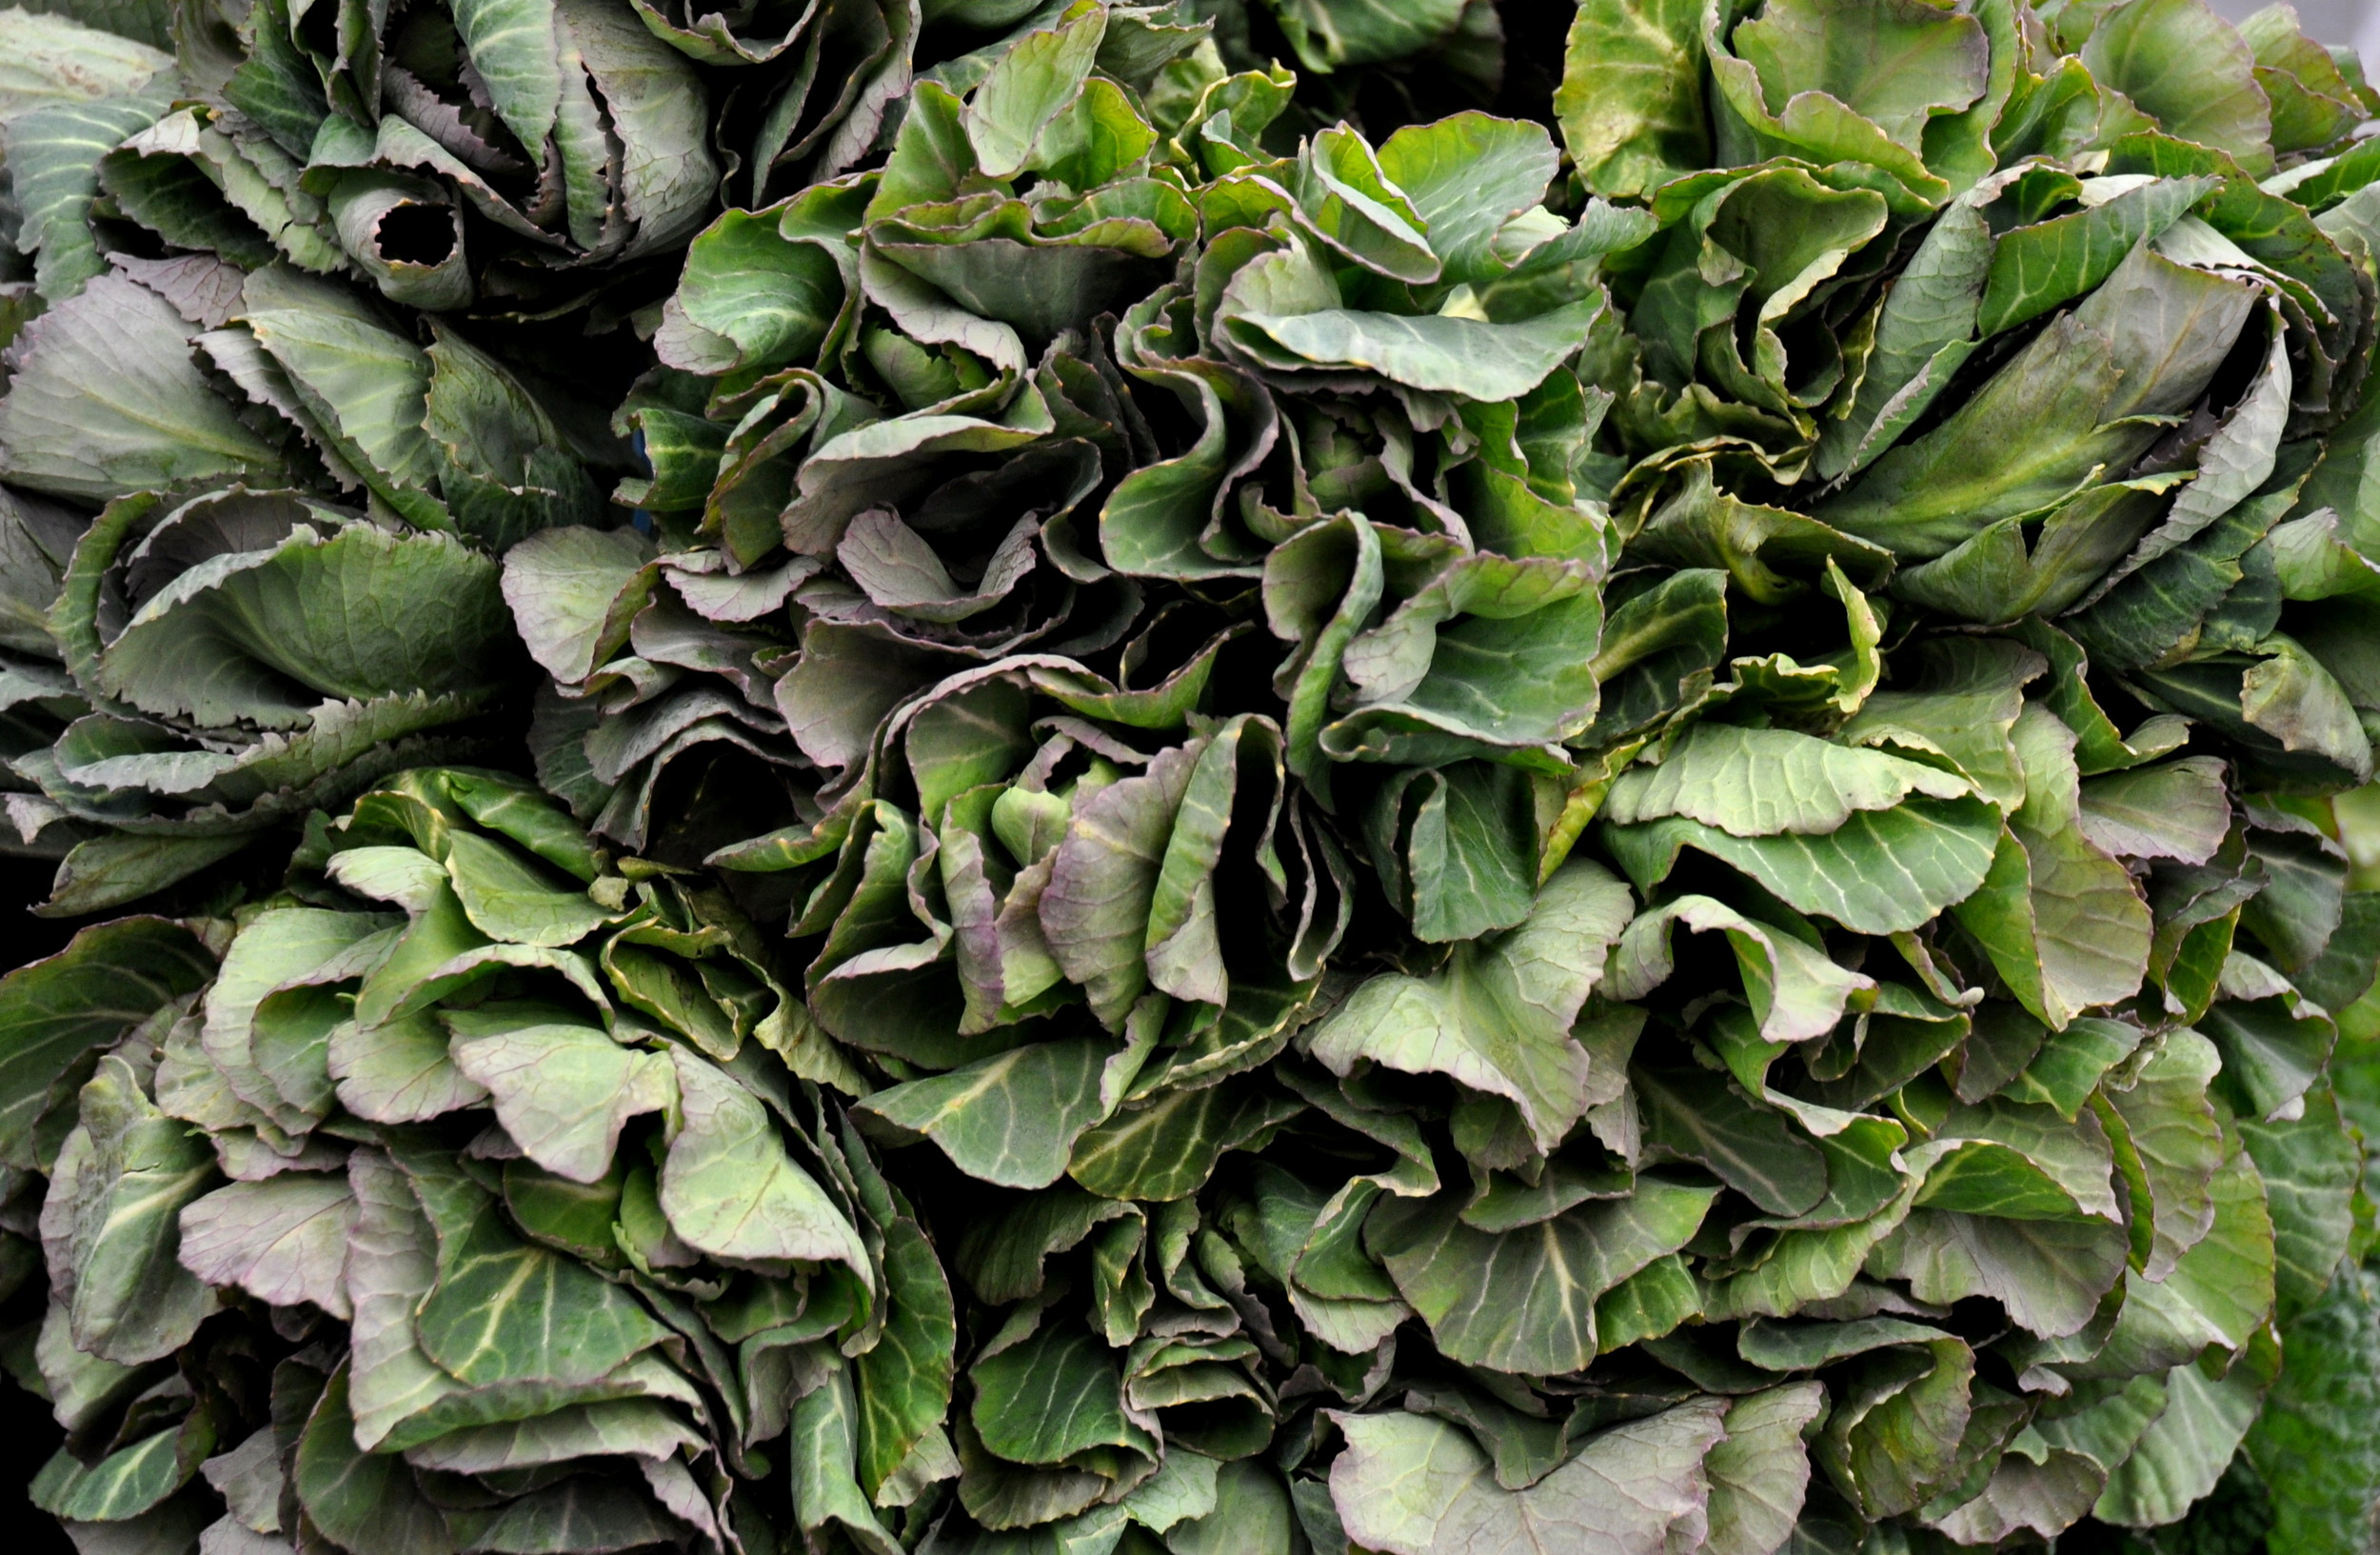 Cabbage greens from Stoney Plains Organic Farms. Photo copyright 2013 by Zachary D. Lyons.